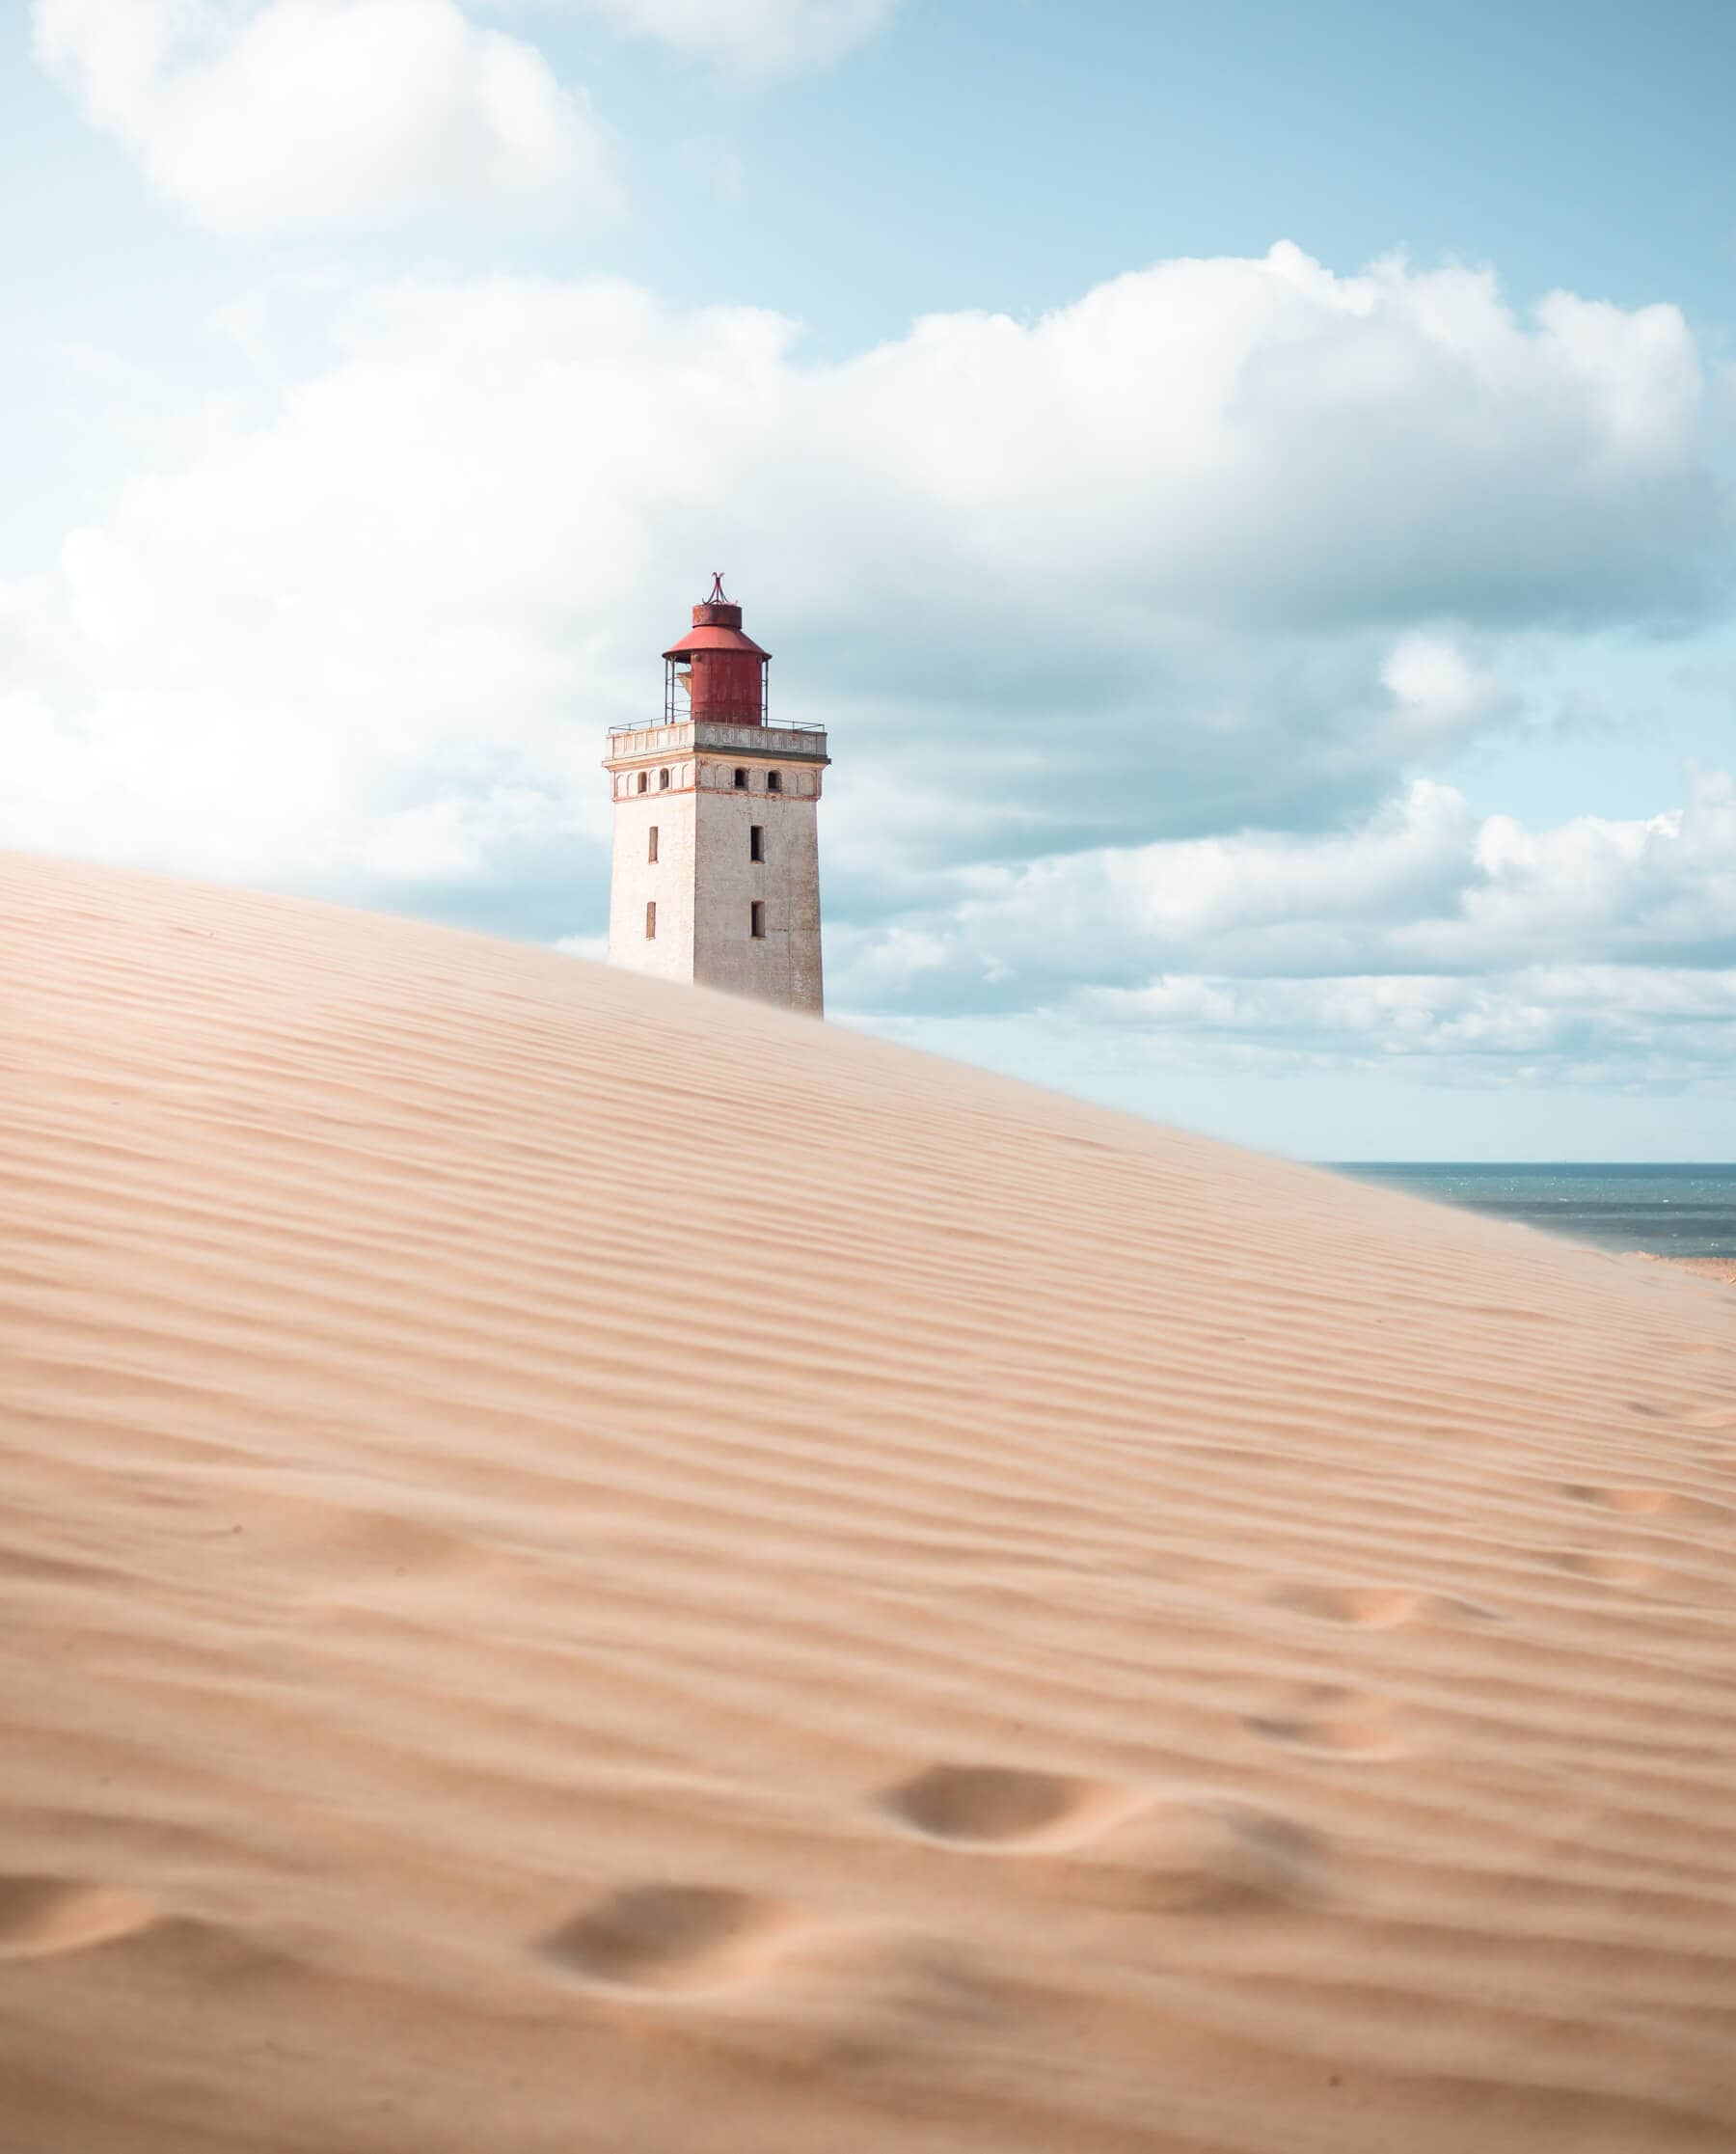 The Ultimate Denmark Bucket List. 101 awesome things to do - Rubjerg Knude Lighthouse